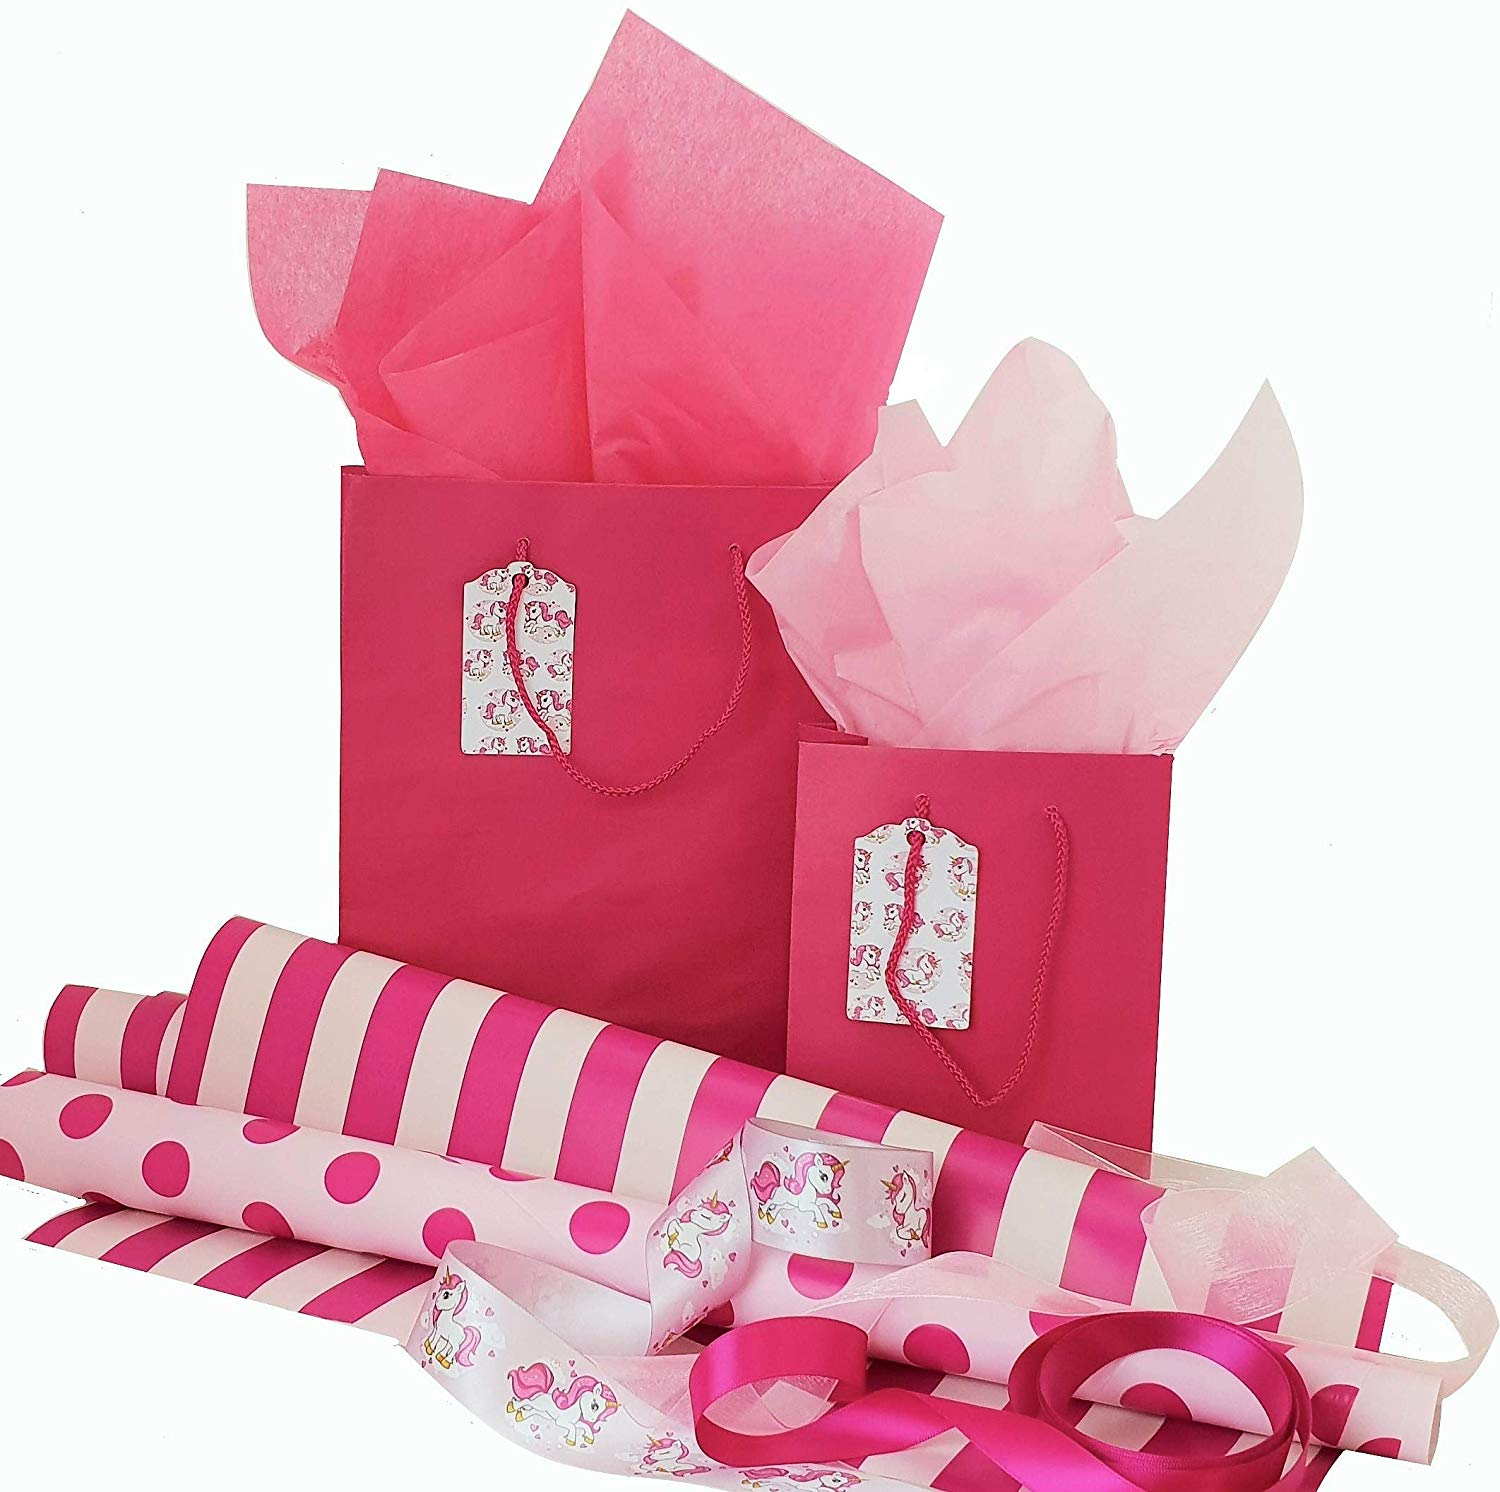 Exclusive Trend Setting Gift Wrapping Set - Pink Unicorn's Complete Gift Wrap Set with 2 Gift Bags w/Tags, Ribbons, Wrapping Paper and Tissue Paper, All Occasions (Pink)